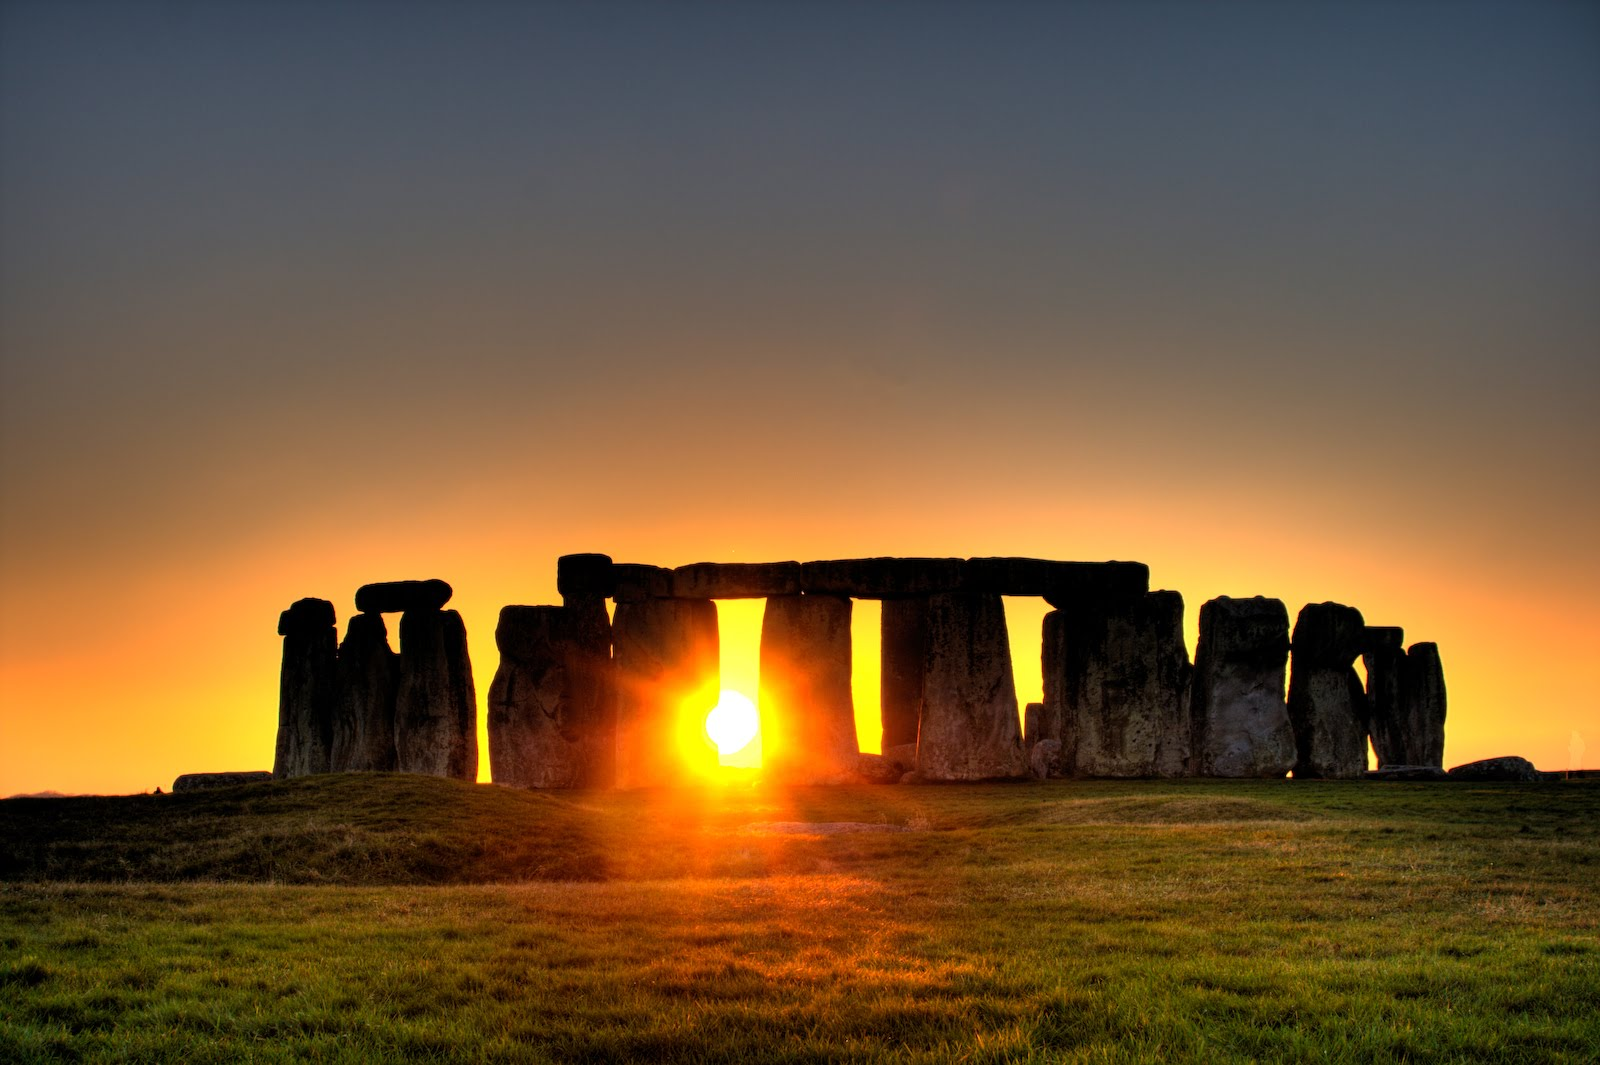 Sonnenaufgang in Stonehenge, Quelle: wikivoyage